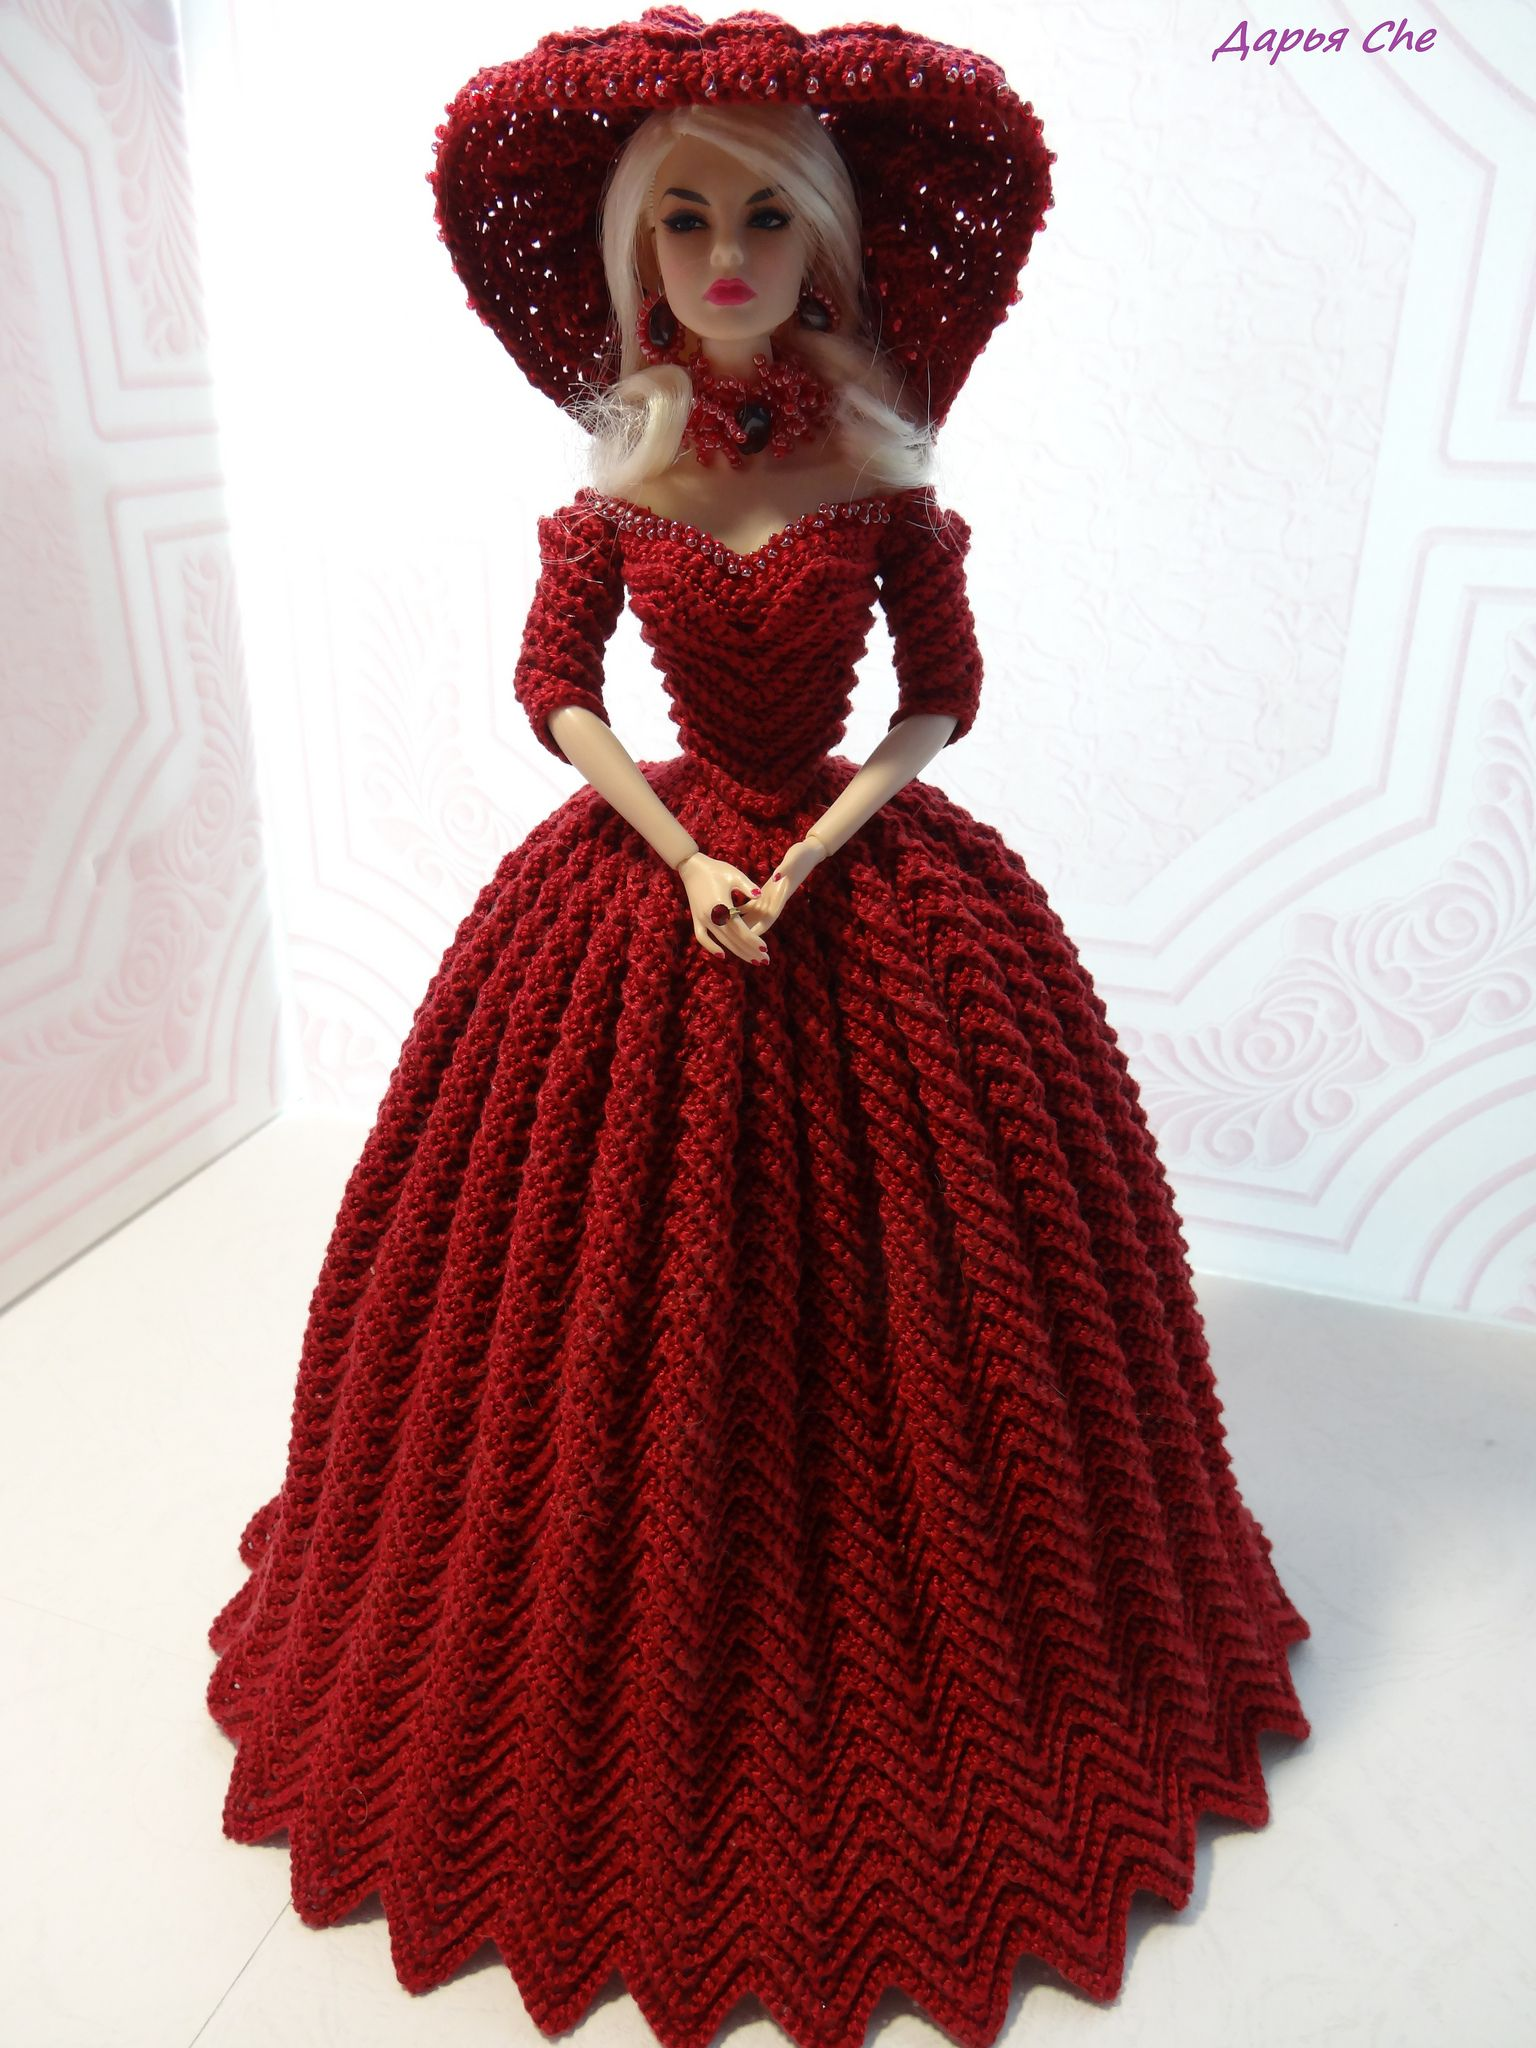 https://flic.kr/p/j1pKWx | 187 | Knit & Crochet: Barbie\'s clothes p ...